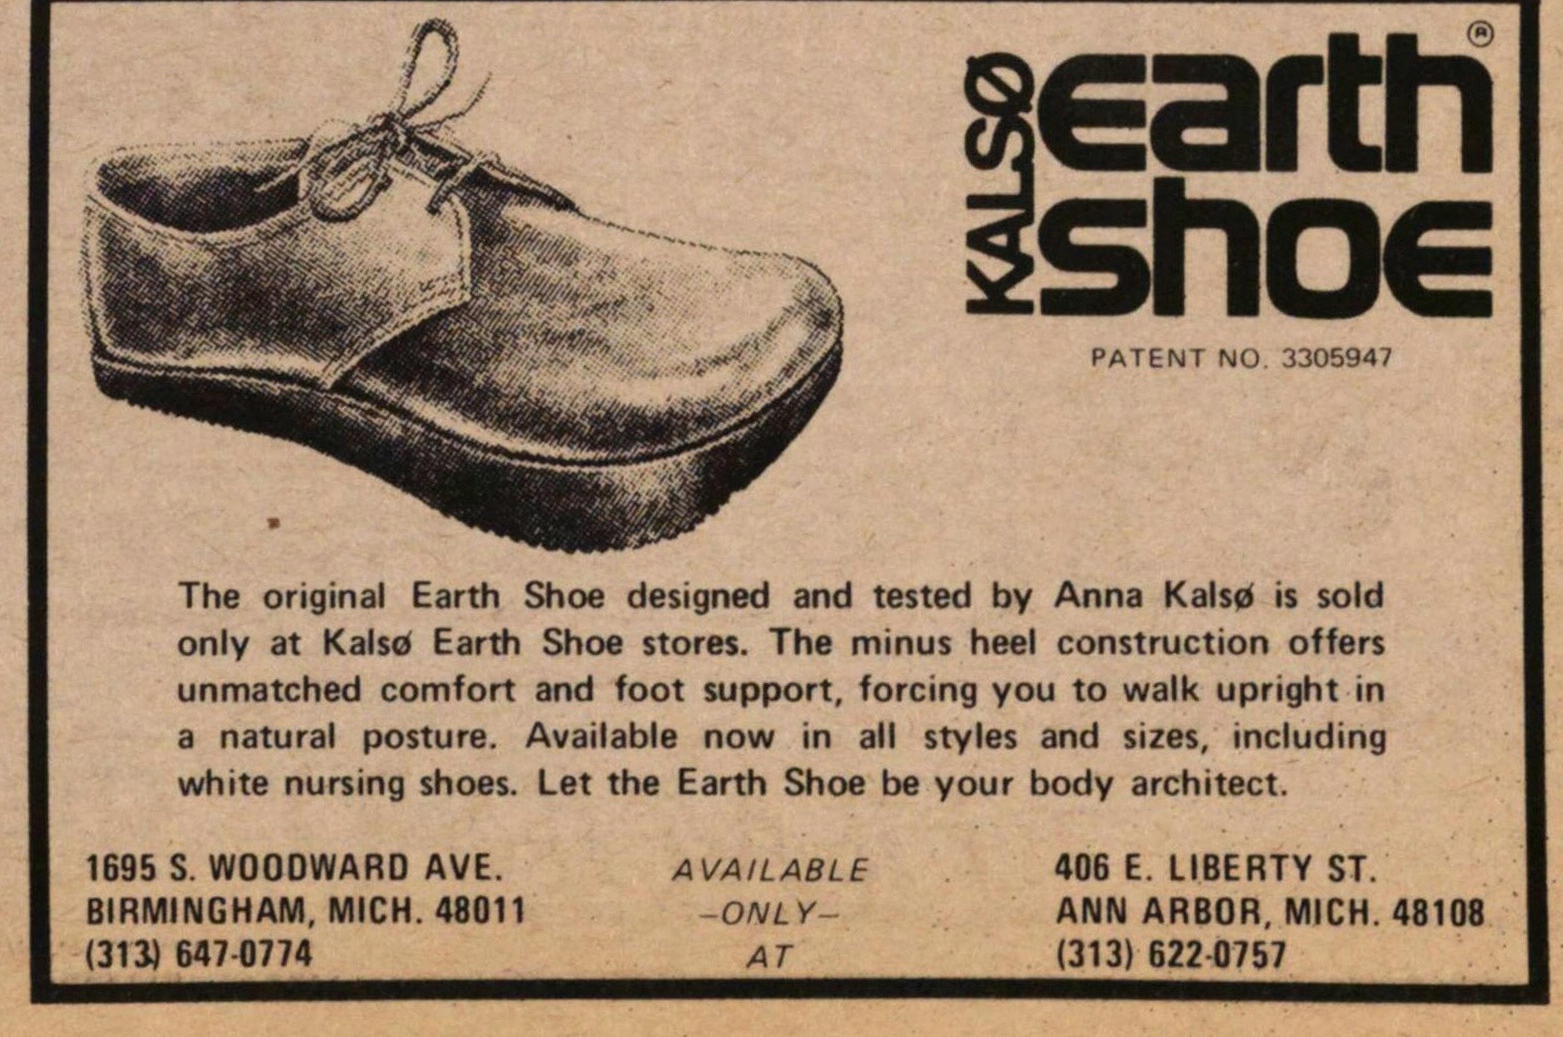 Kalso Earth Shoe image